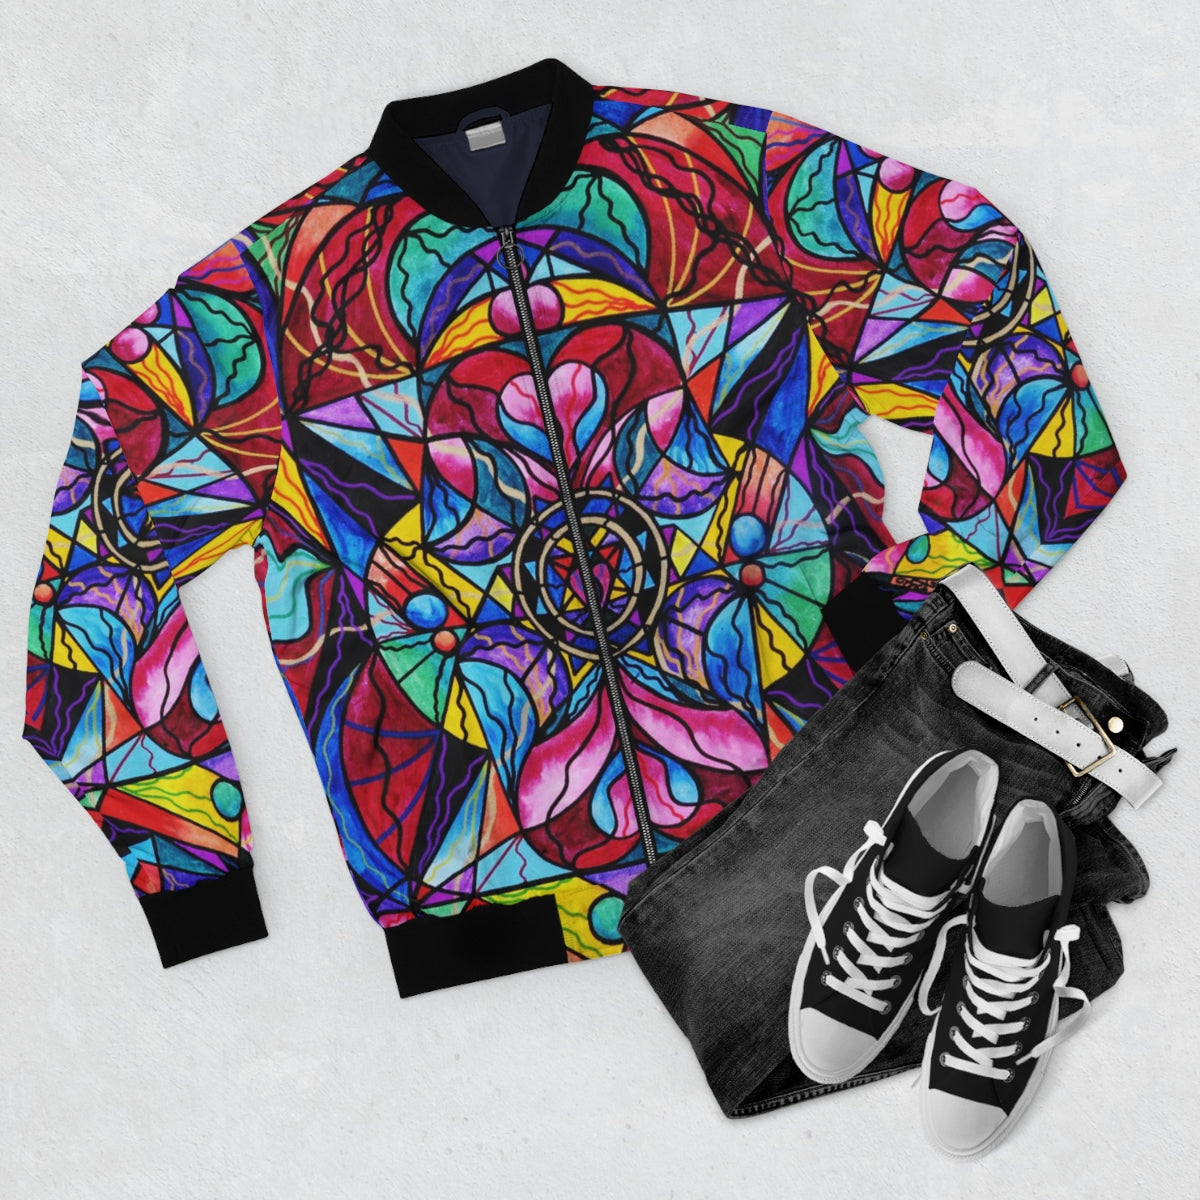 Blue Ray Self Love Grid-Bomber Jacket